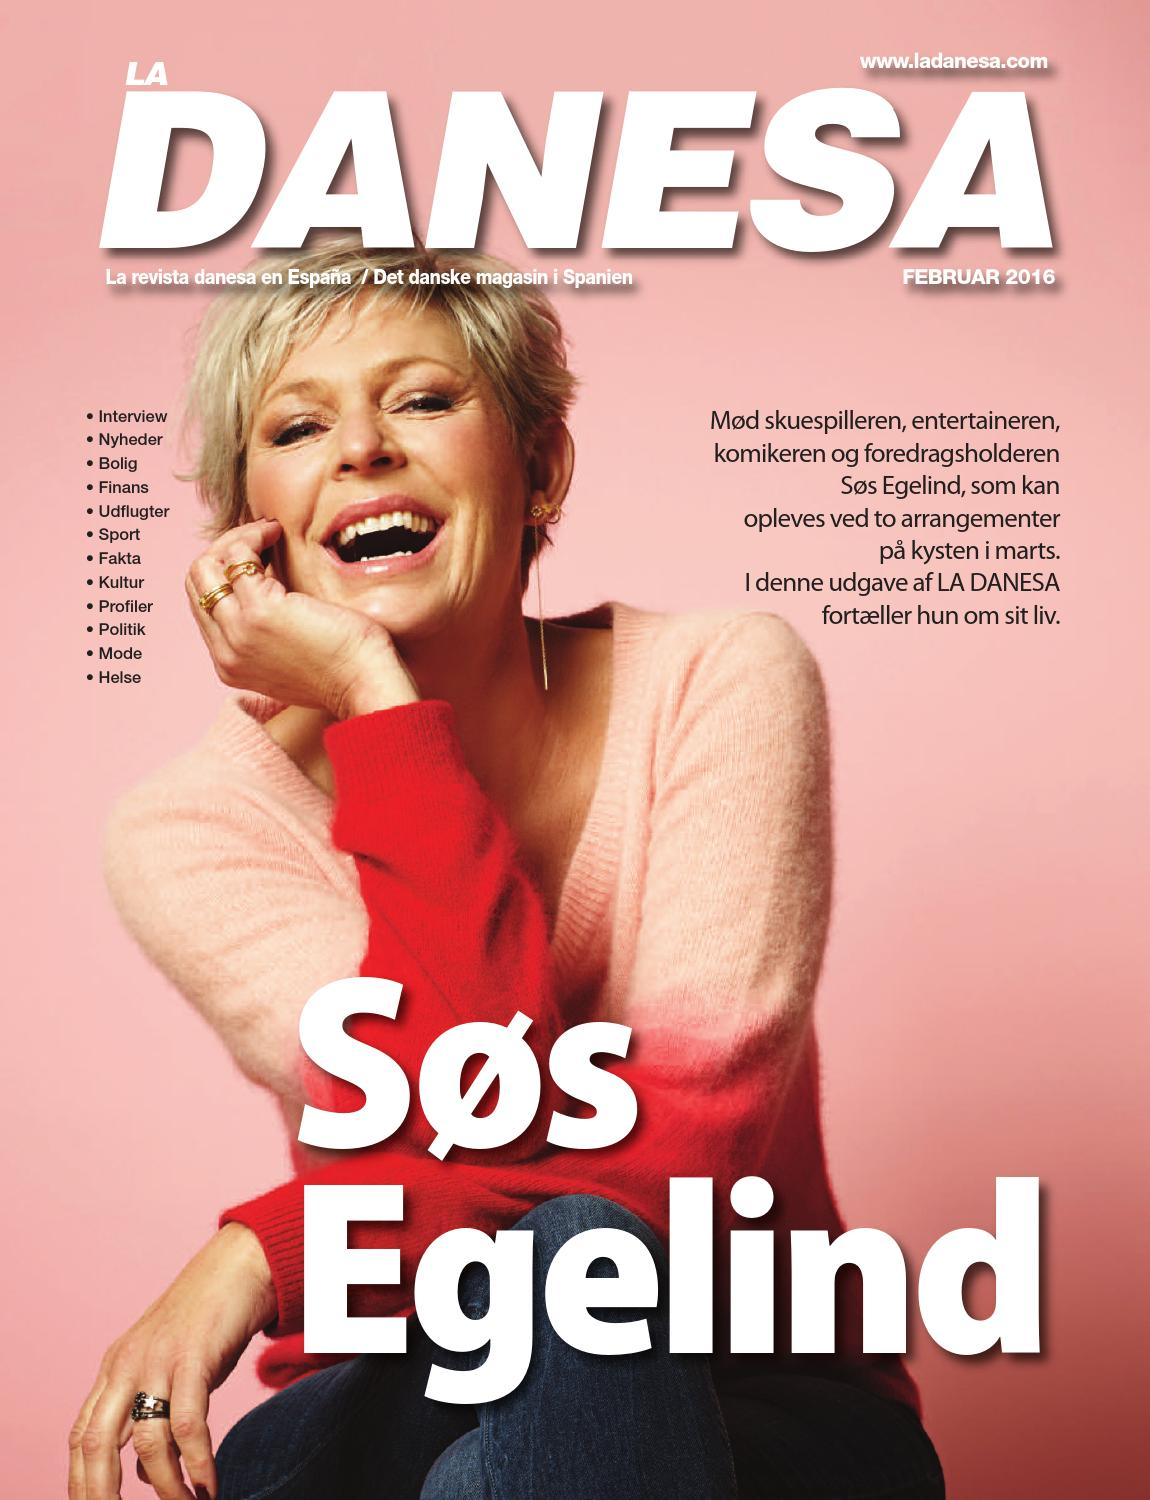 La Danesa januar 2016 by Norrbom Marketing - issuu